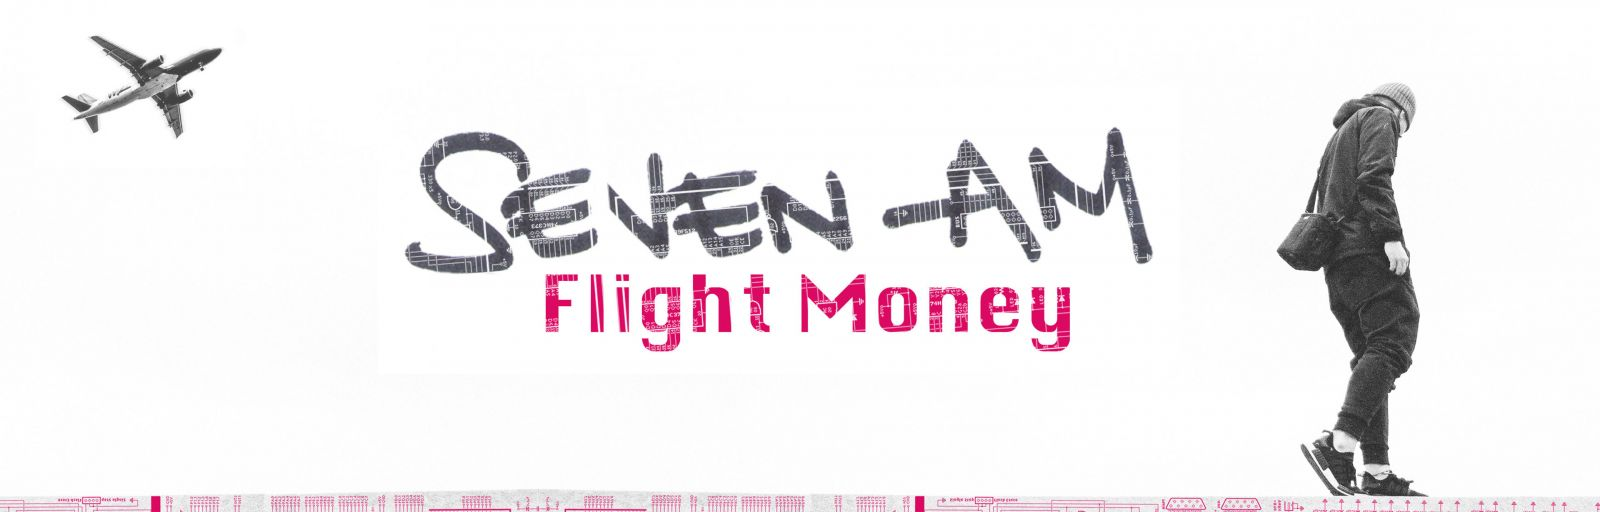 Seven Am - Flight Money - Bite Hard